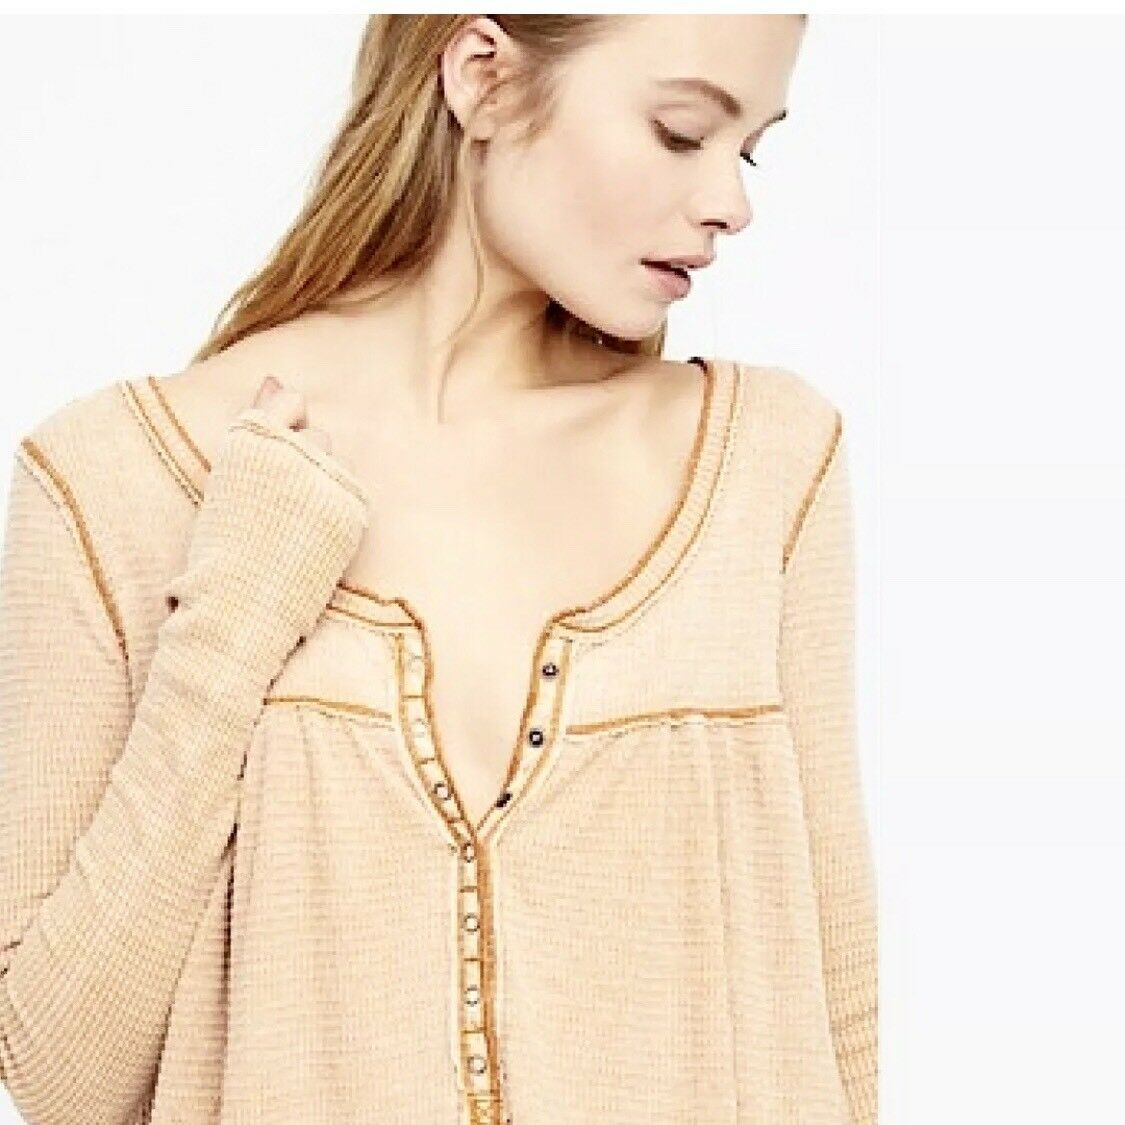 New Free People Kai Henley Thermal Top Gold Large L 68  OB718244 NWT